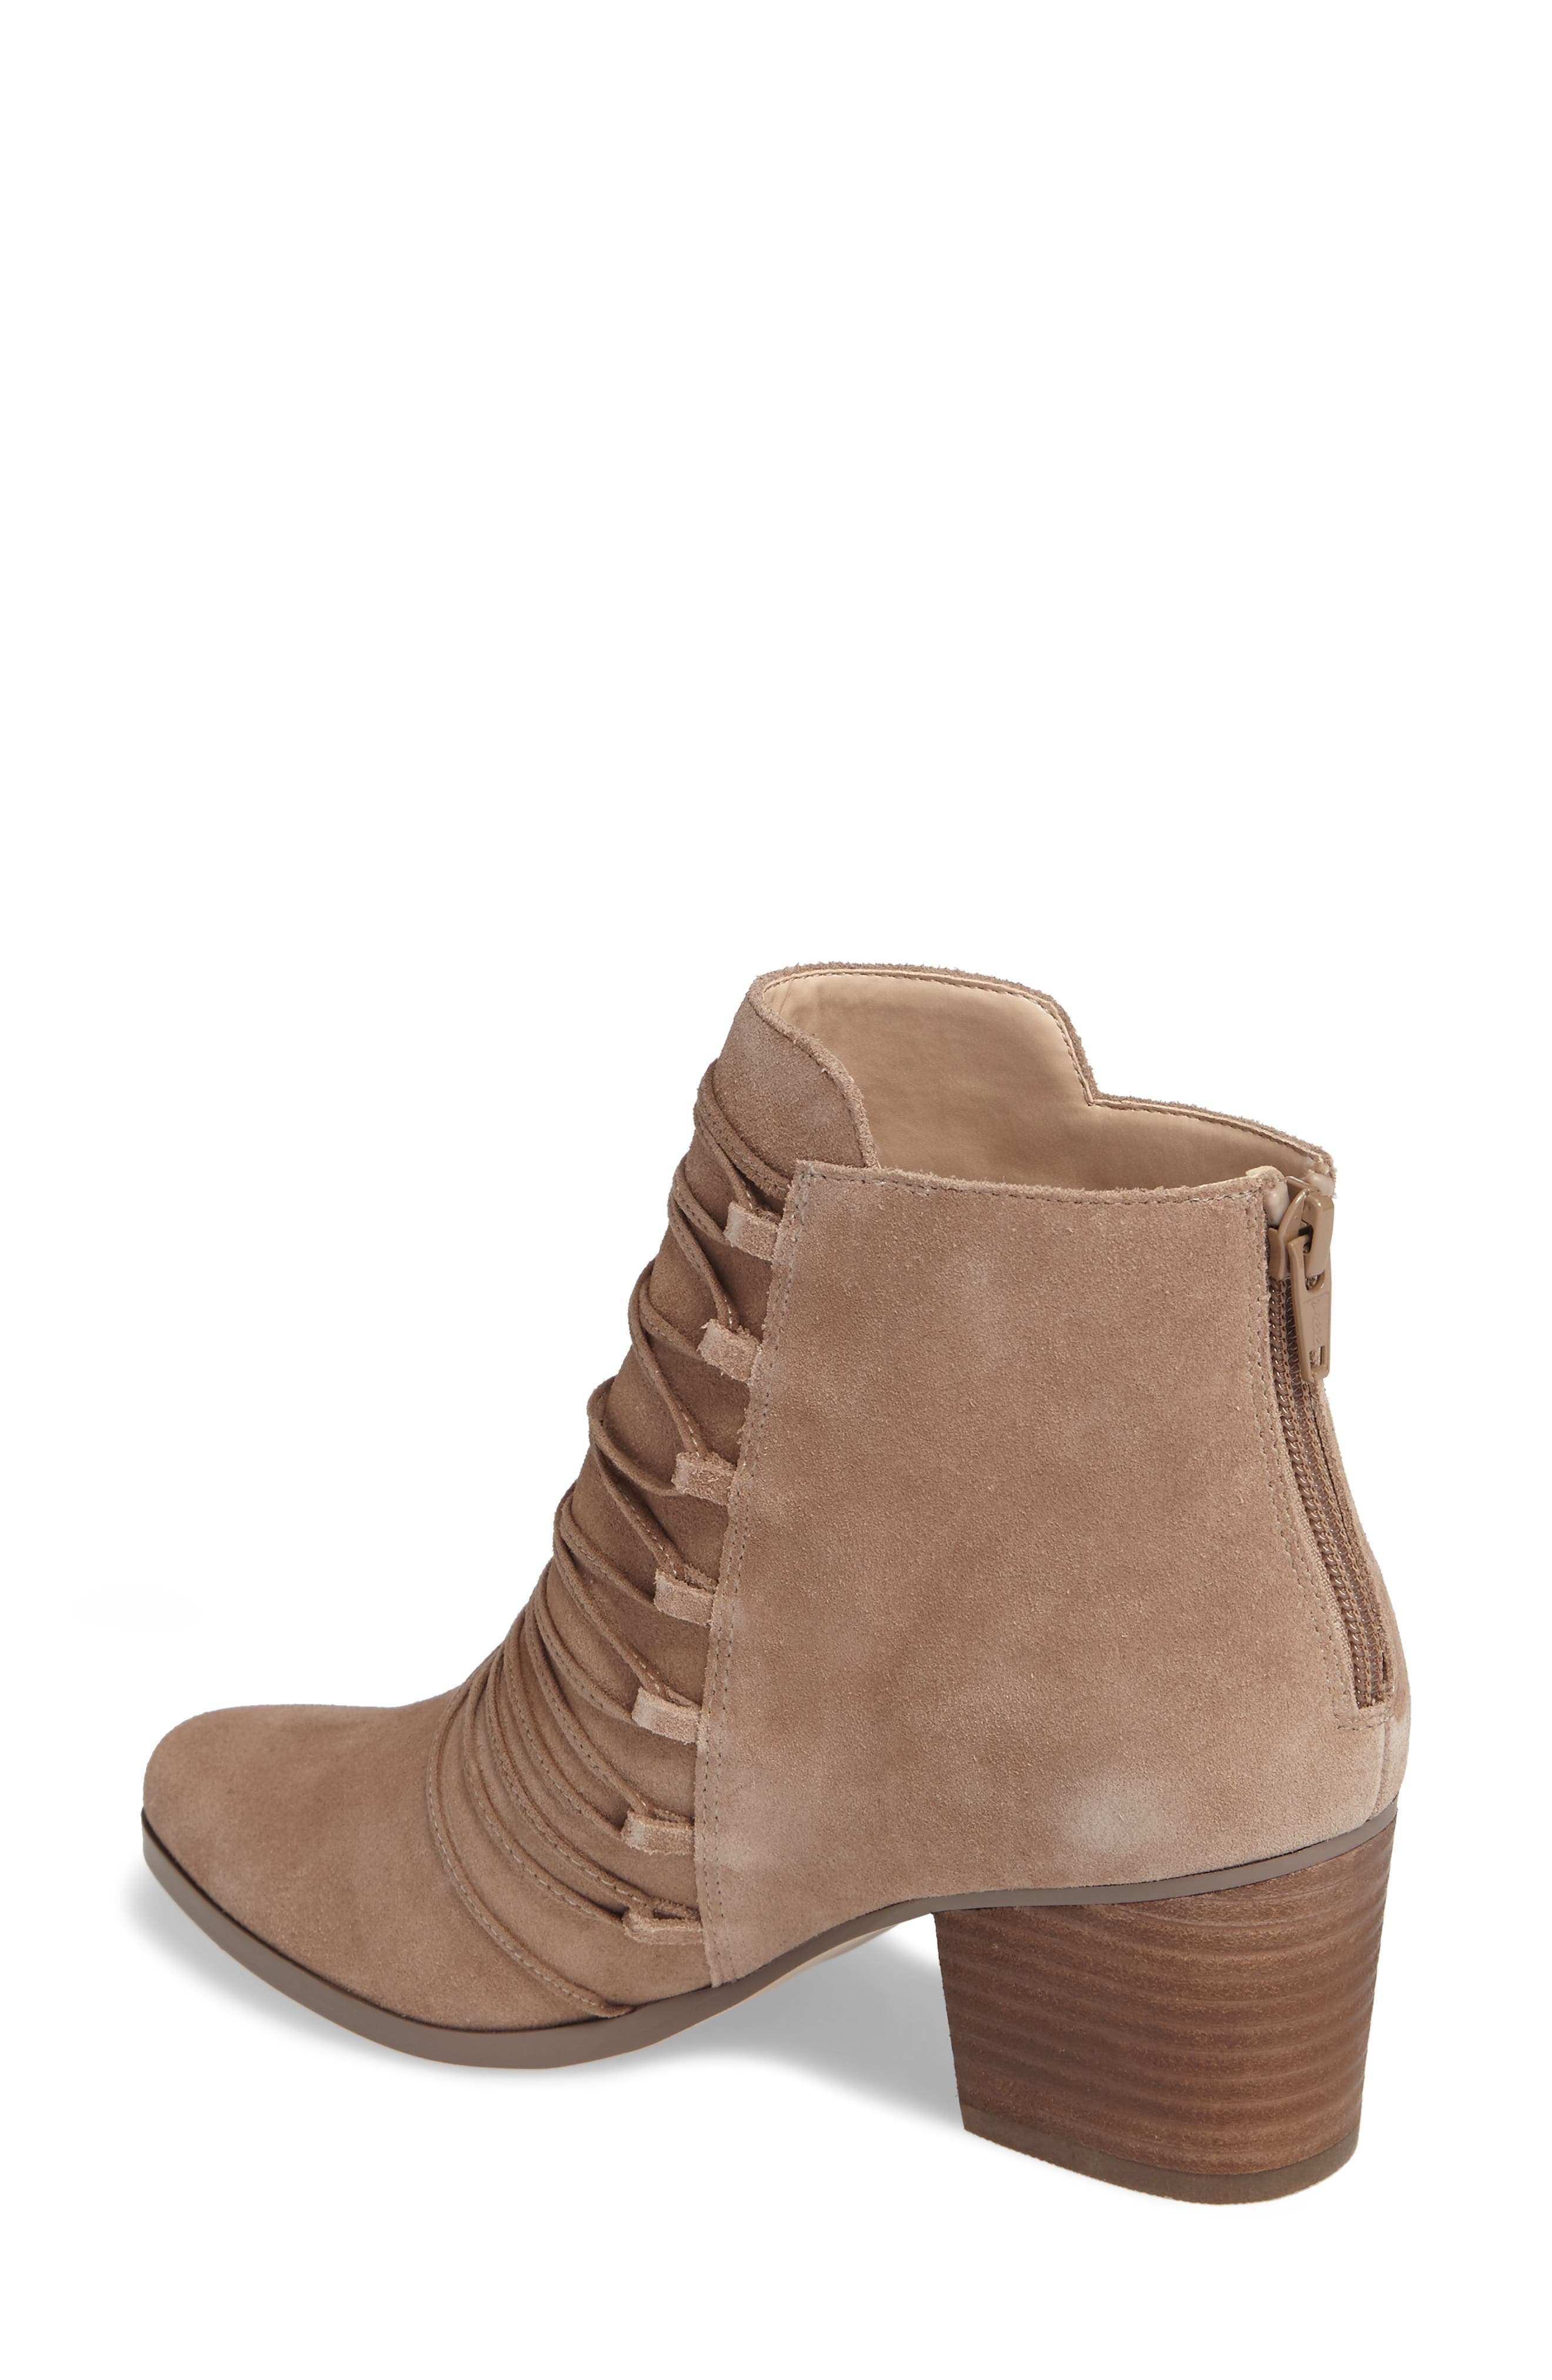 Bellevue Bootie,                             Alternate thumbnail 2, color,                             Night Taupe Suede